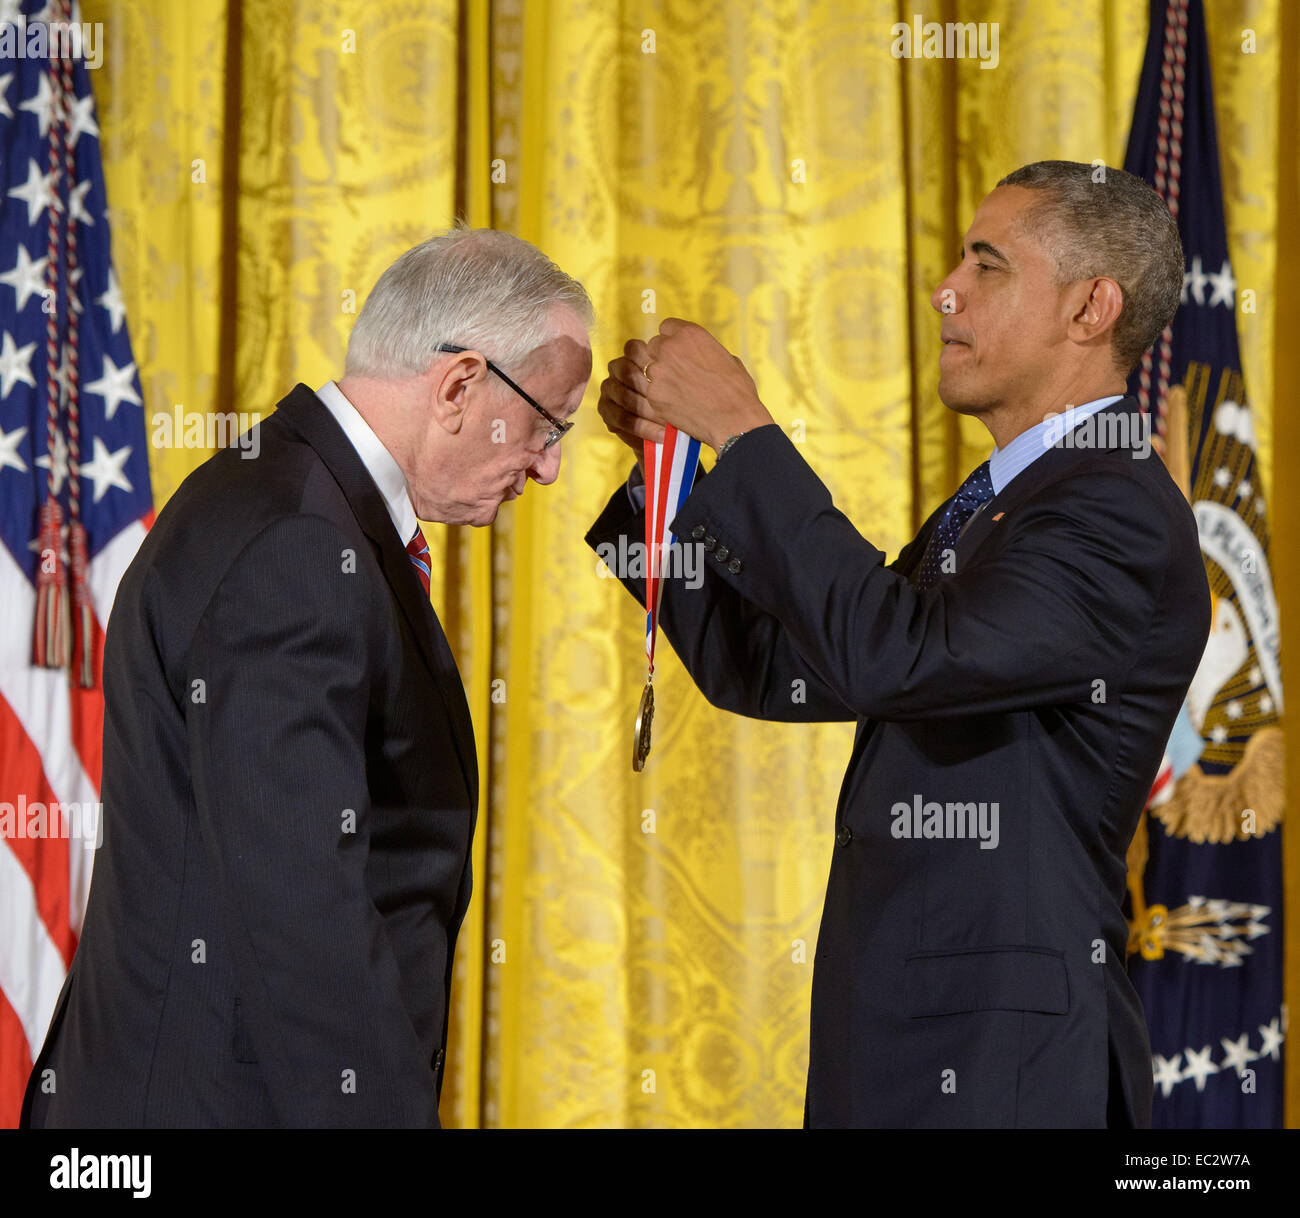 President Barack Obama bestows the National Medal of Science, the nation's top scientific honor, to MESSENGER - Stock Image